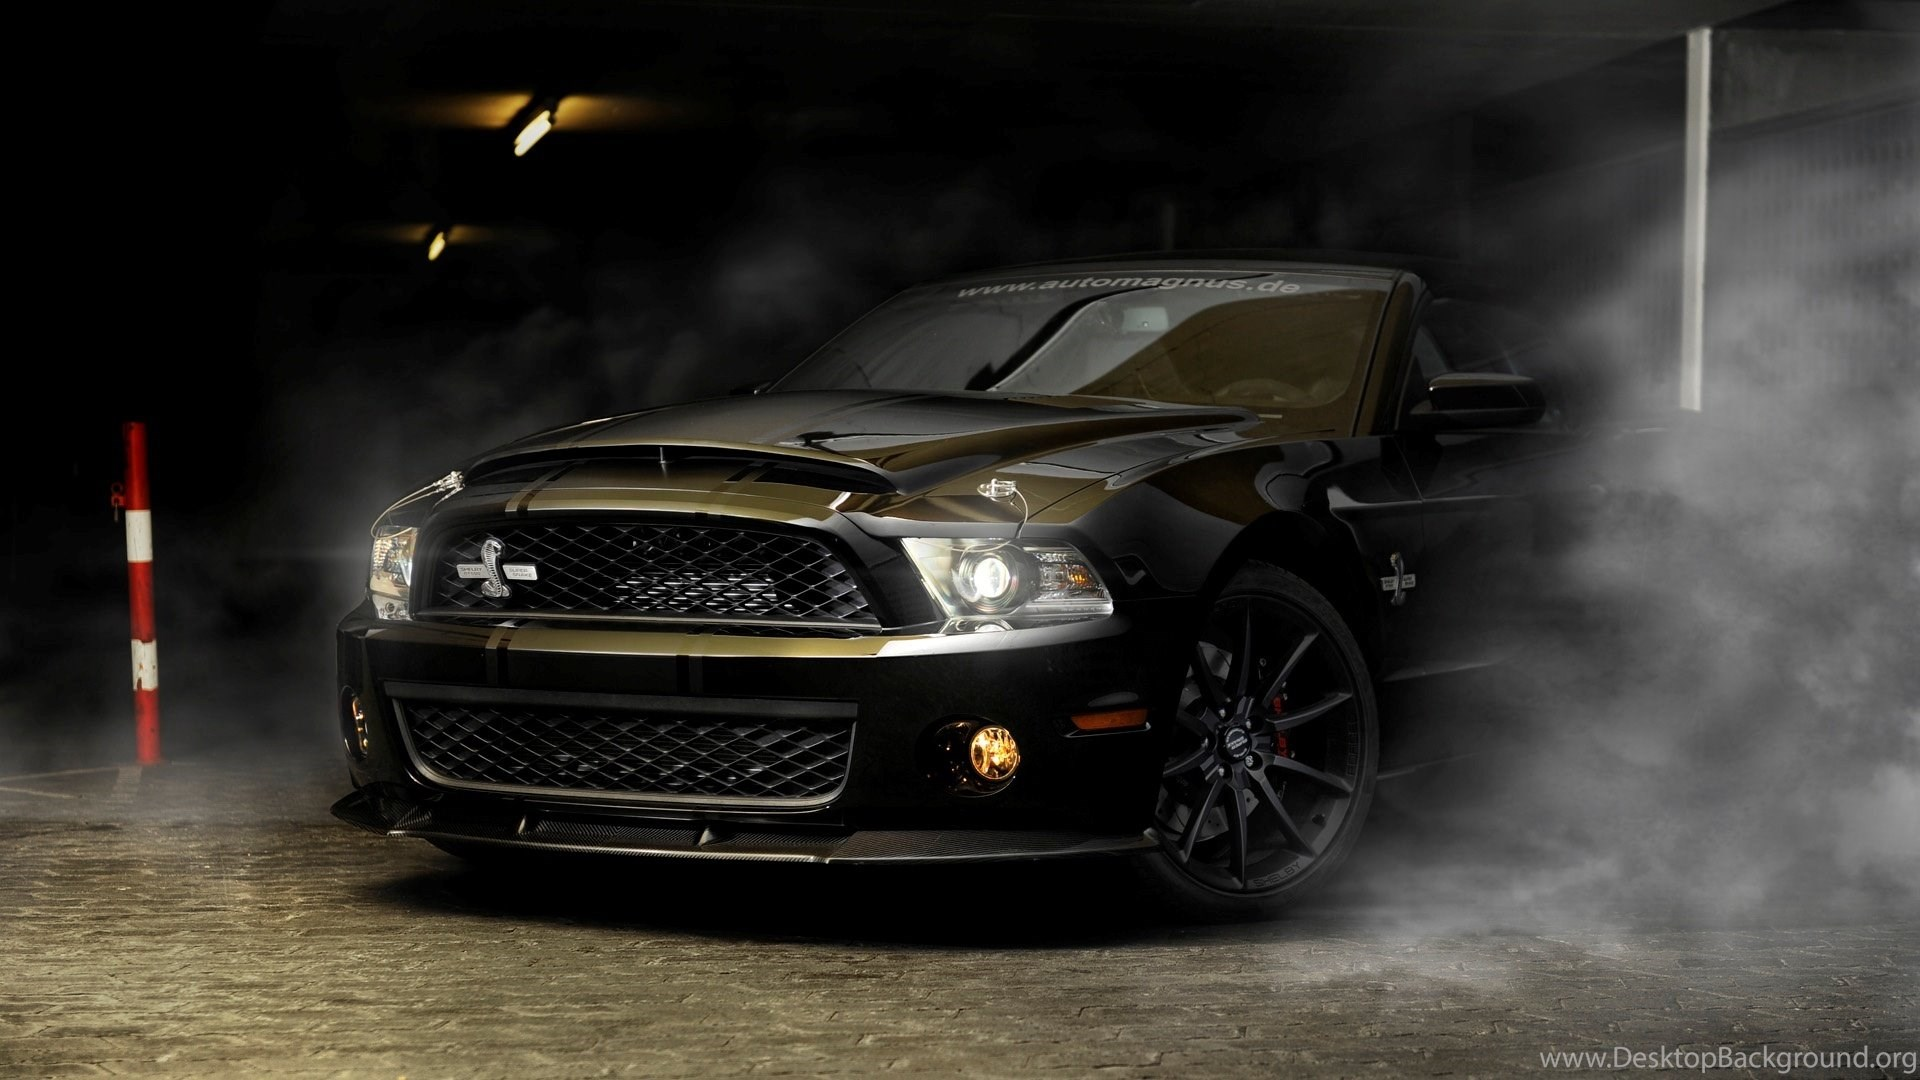 Ford mustang shelby gt500 wallpapers hd desktop background - Ford mustang wallpaper download ...